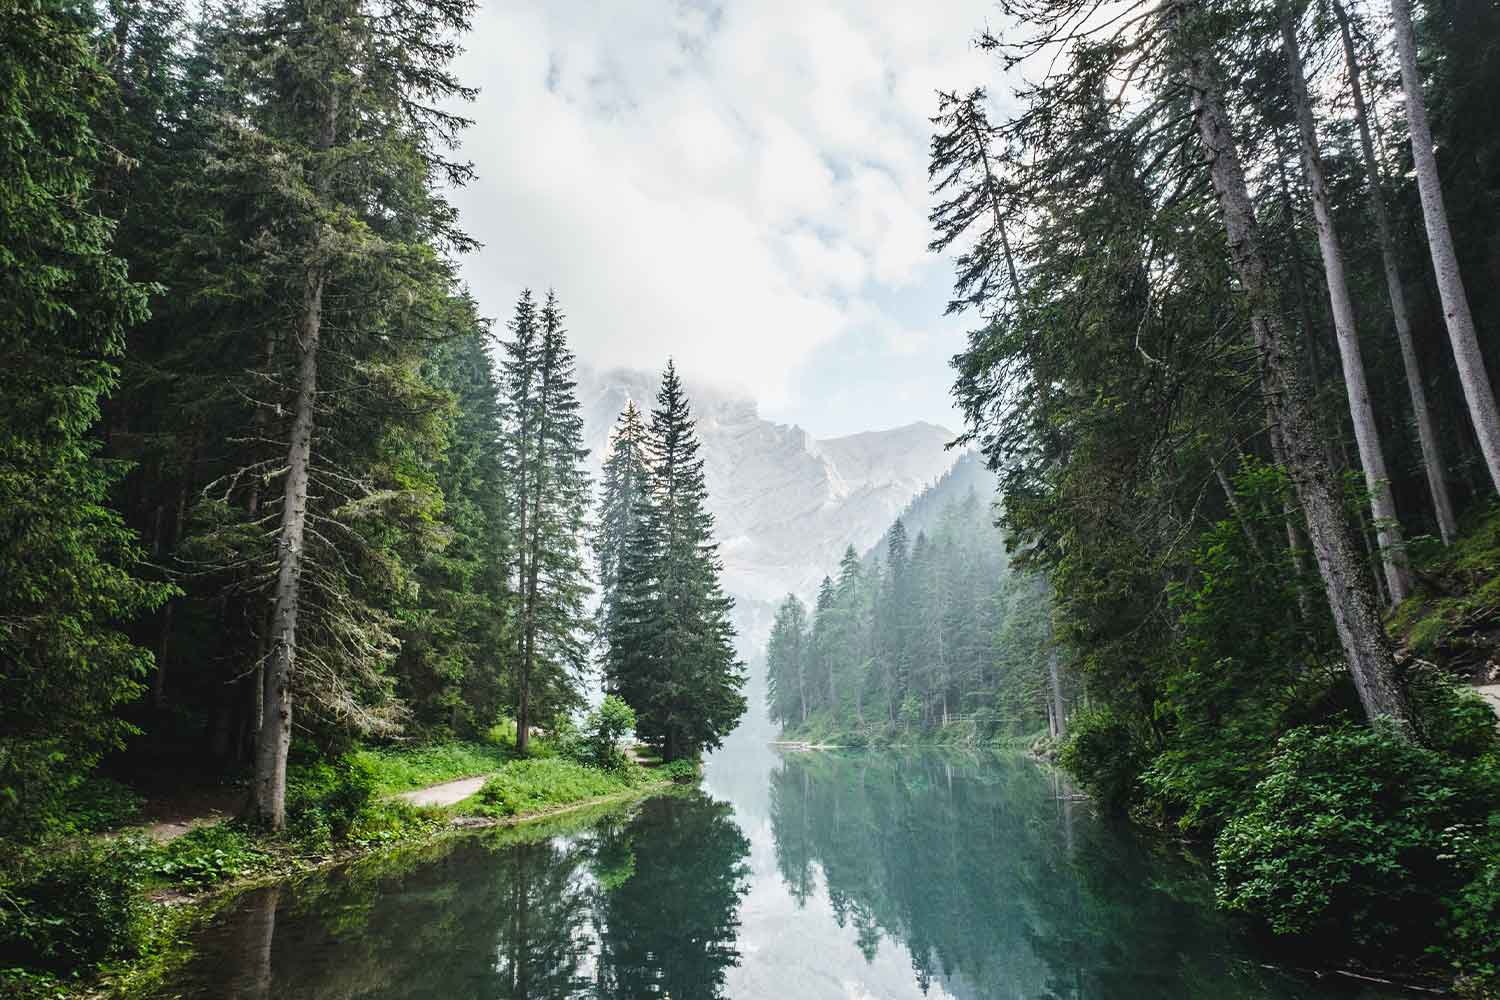 A Lake And A Conifer Forest